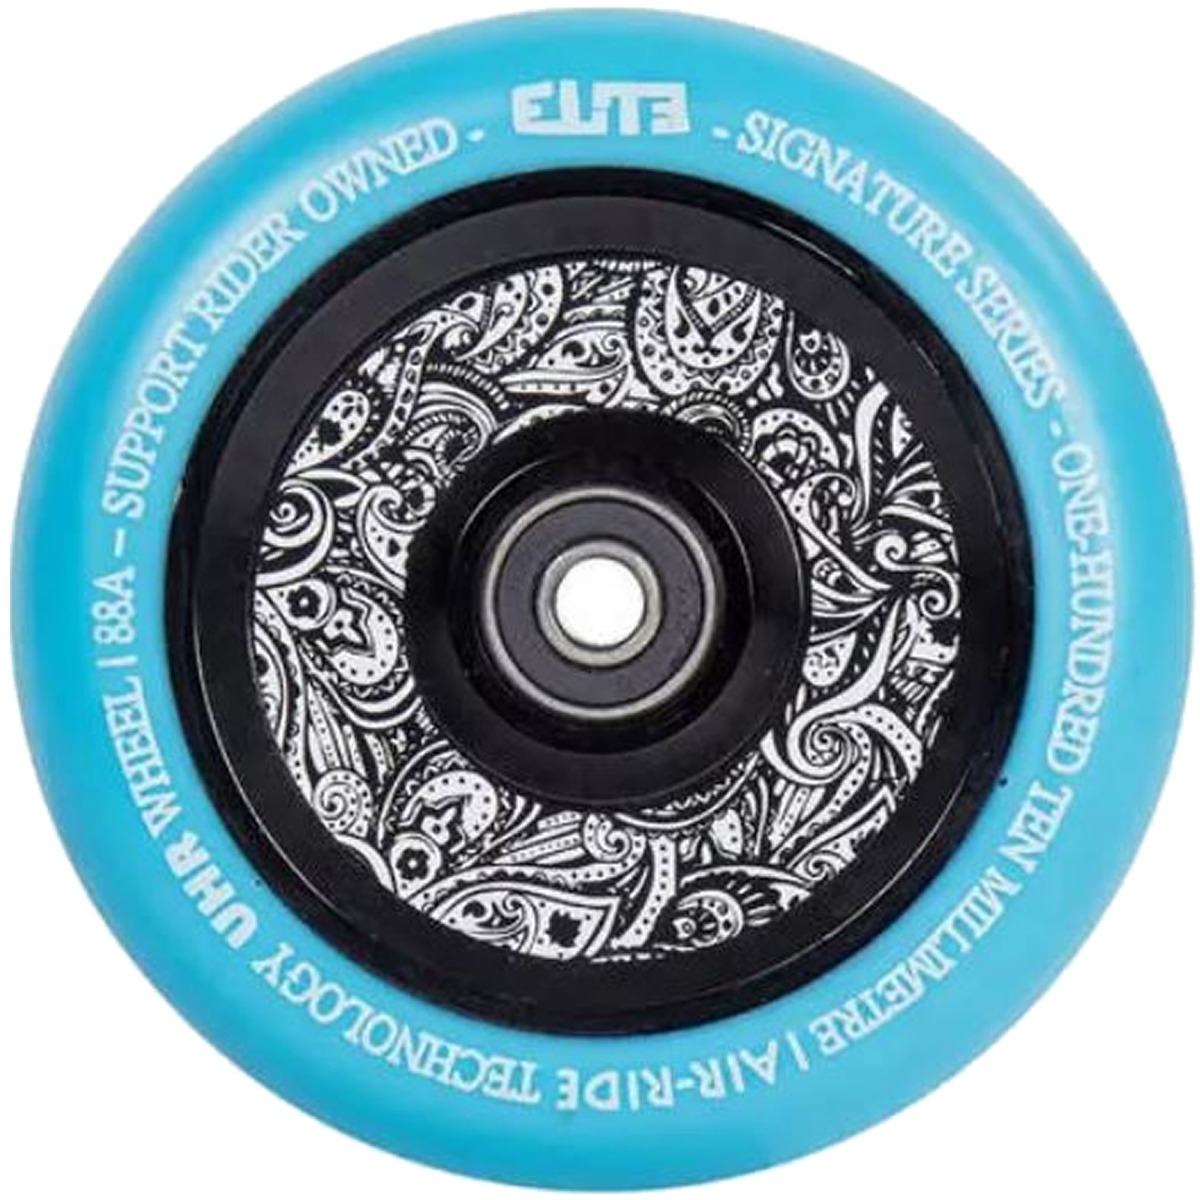 An image of Elite Air Ride 110mm Scooter Wheel - Blue Floral